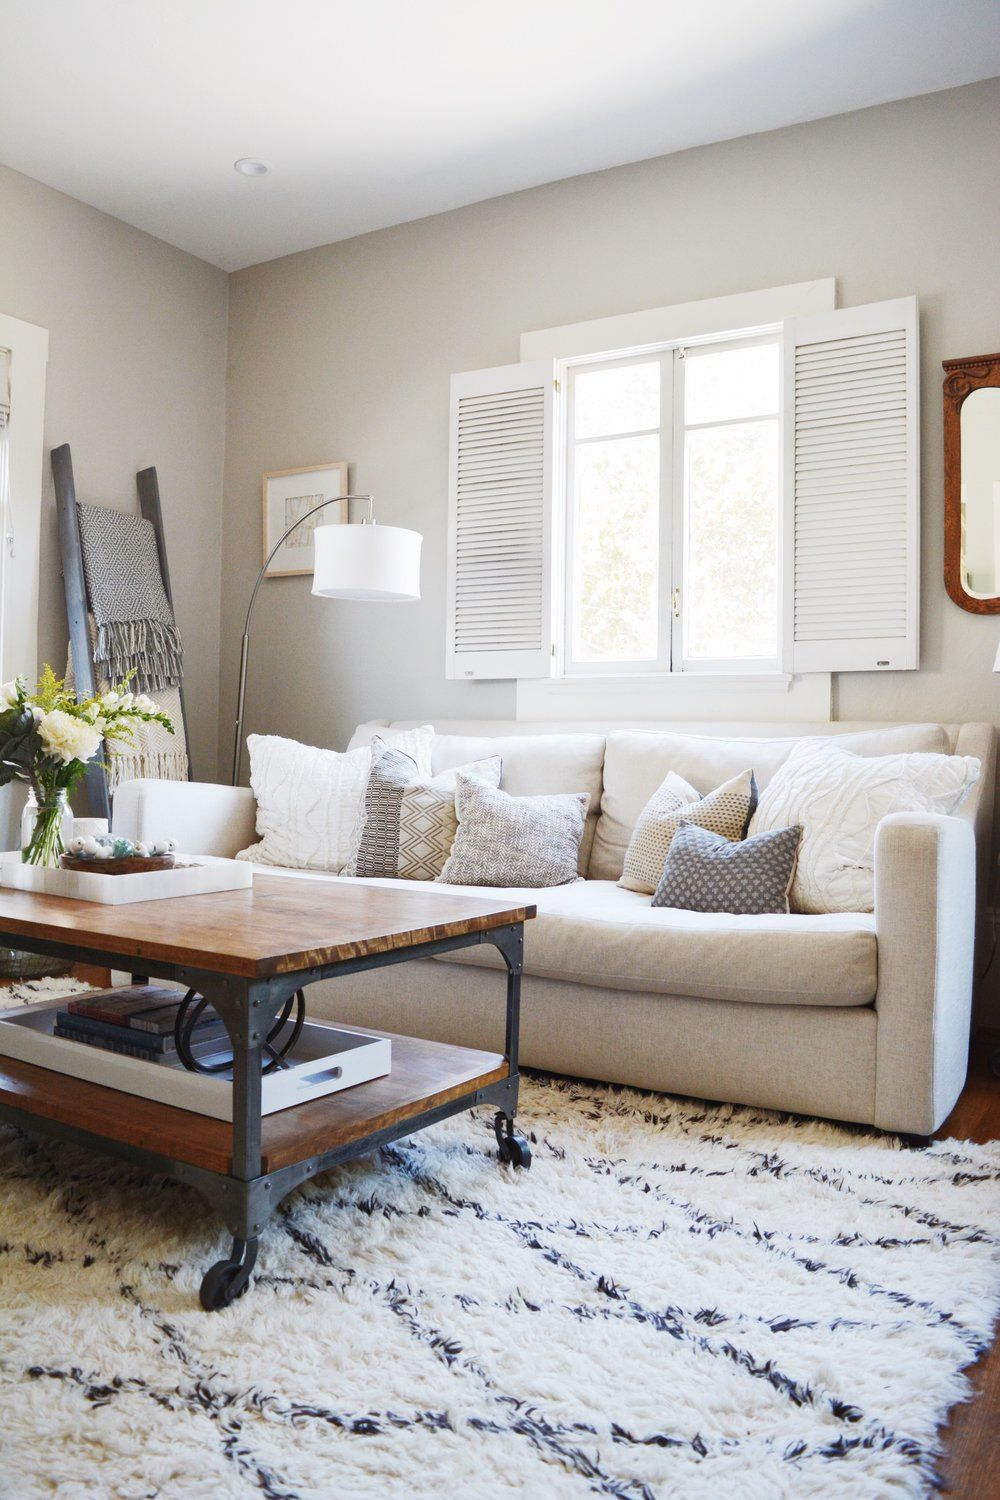 Pin by Kendall Koch on For the Home   Pinterest   Living rooms ...